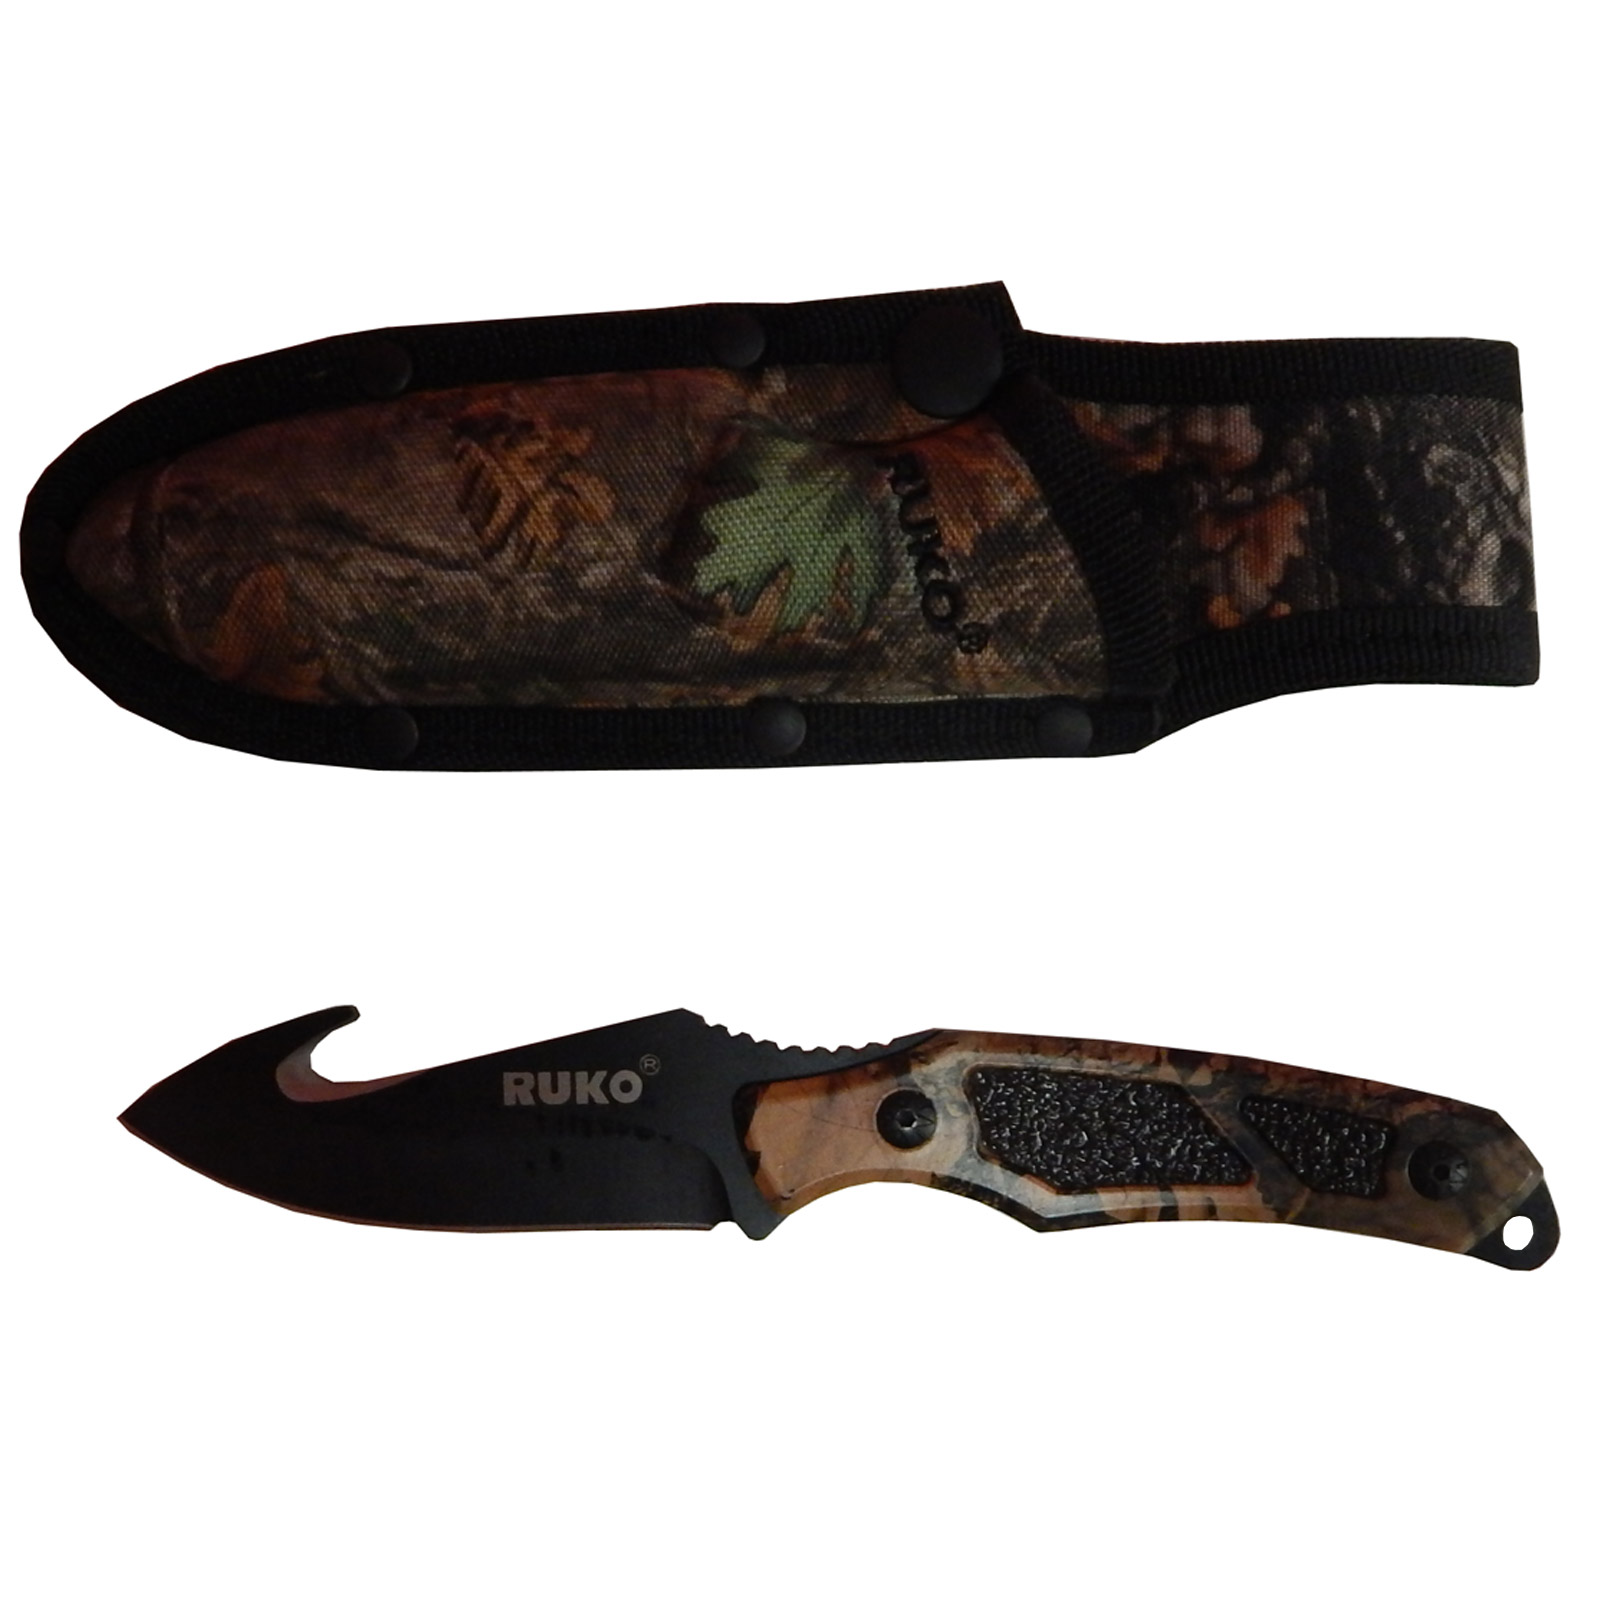 "Ruko Outfitter 3.5"" Gut Hook Skinning Knife WX-3D Camo With Sheath, RUK0155"